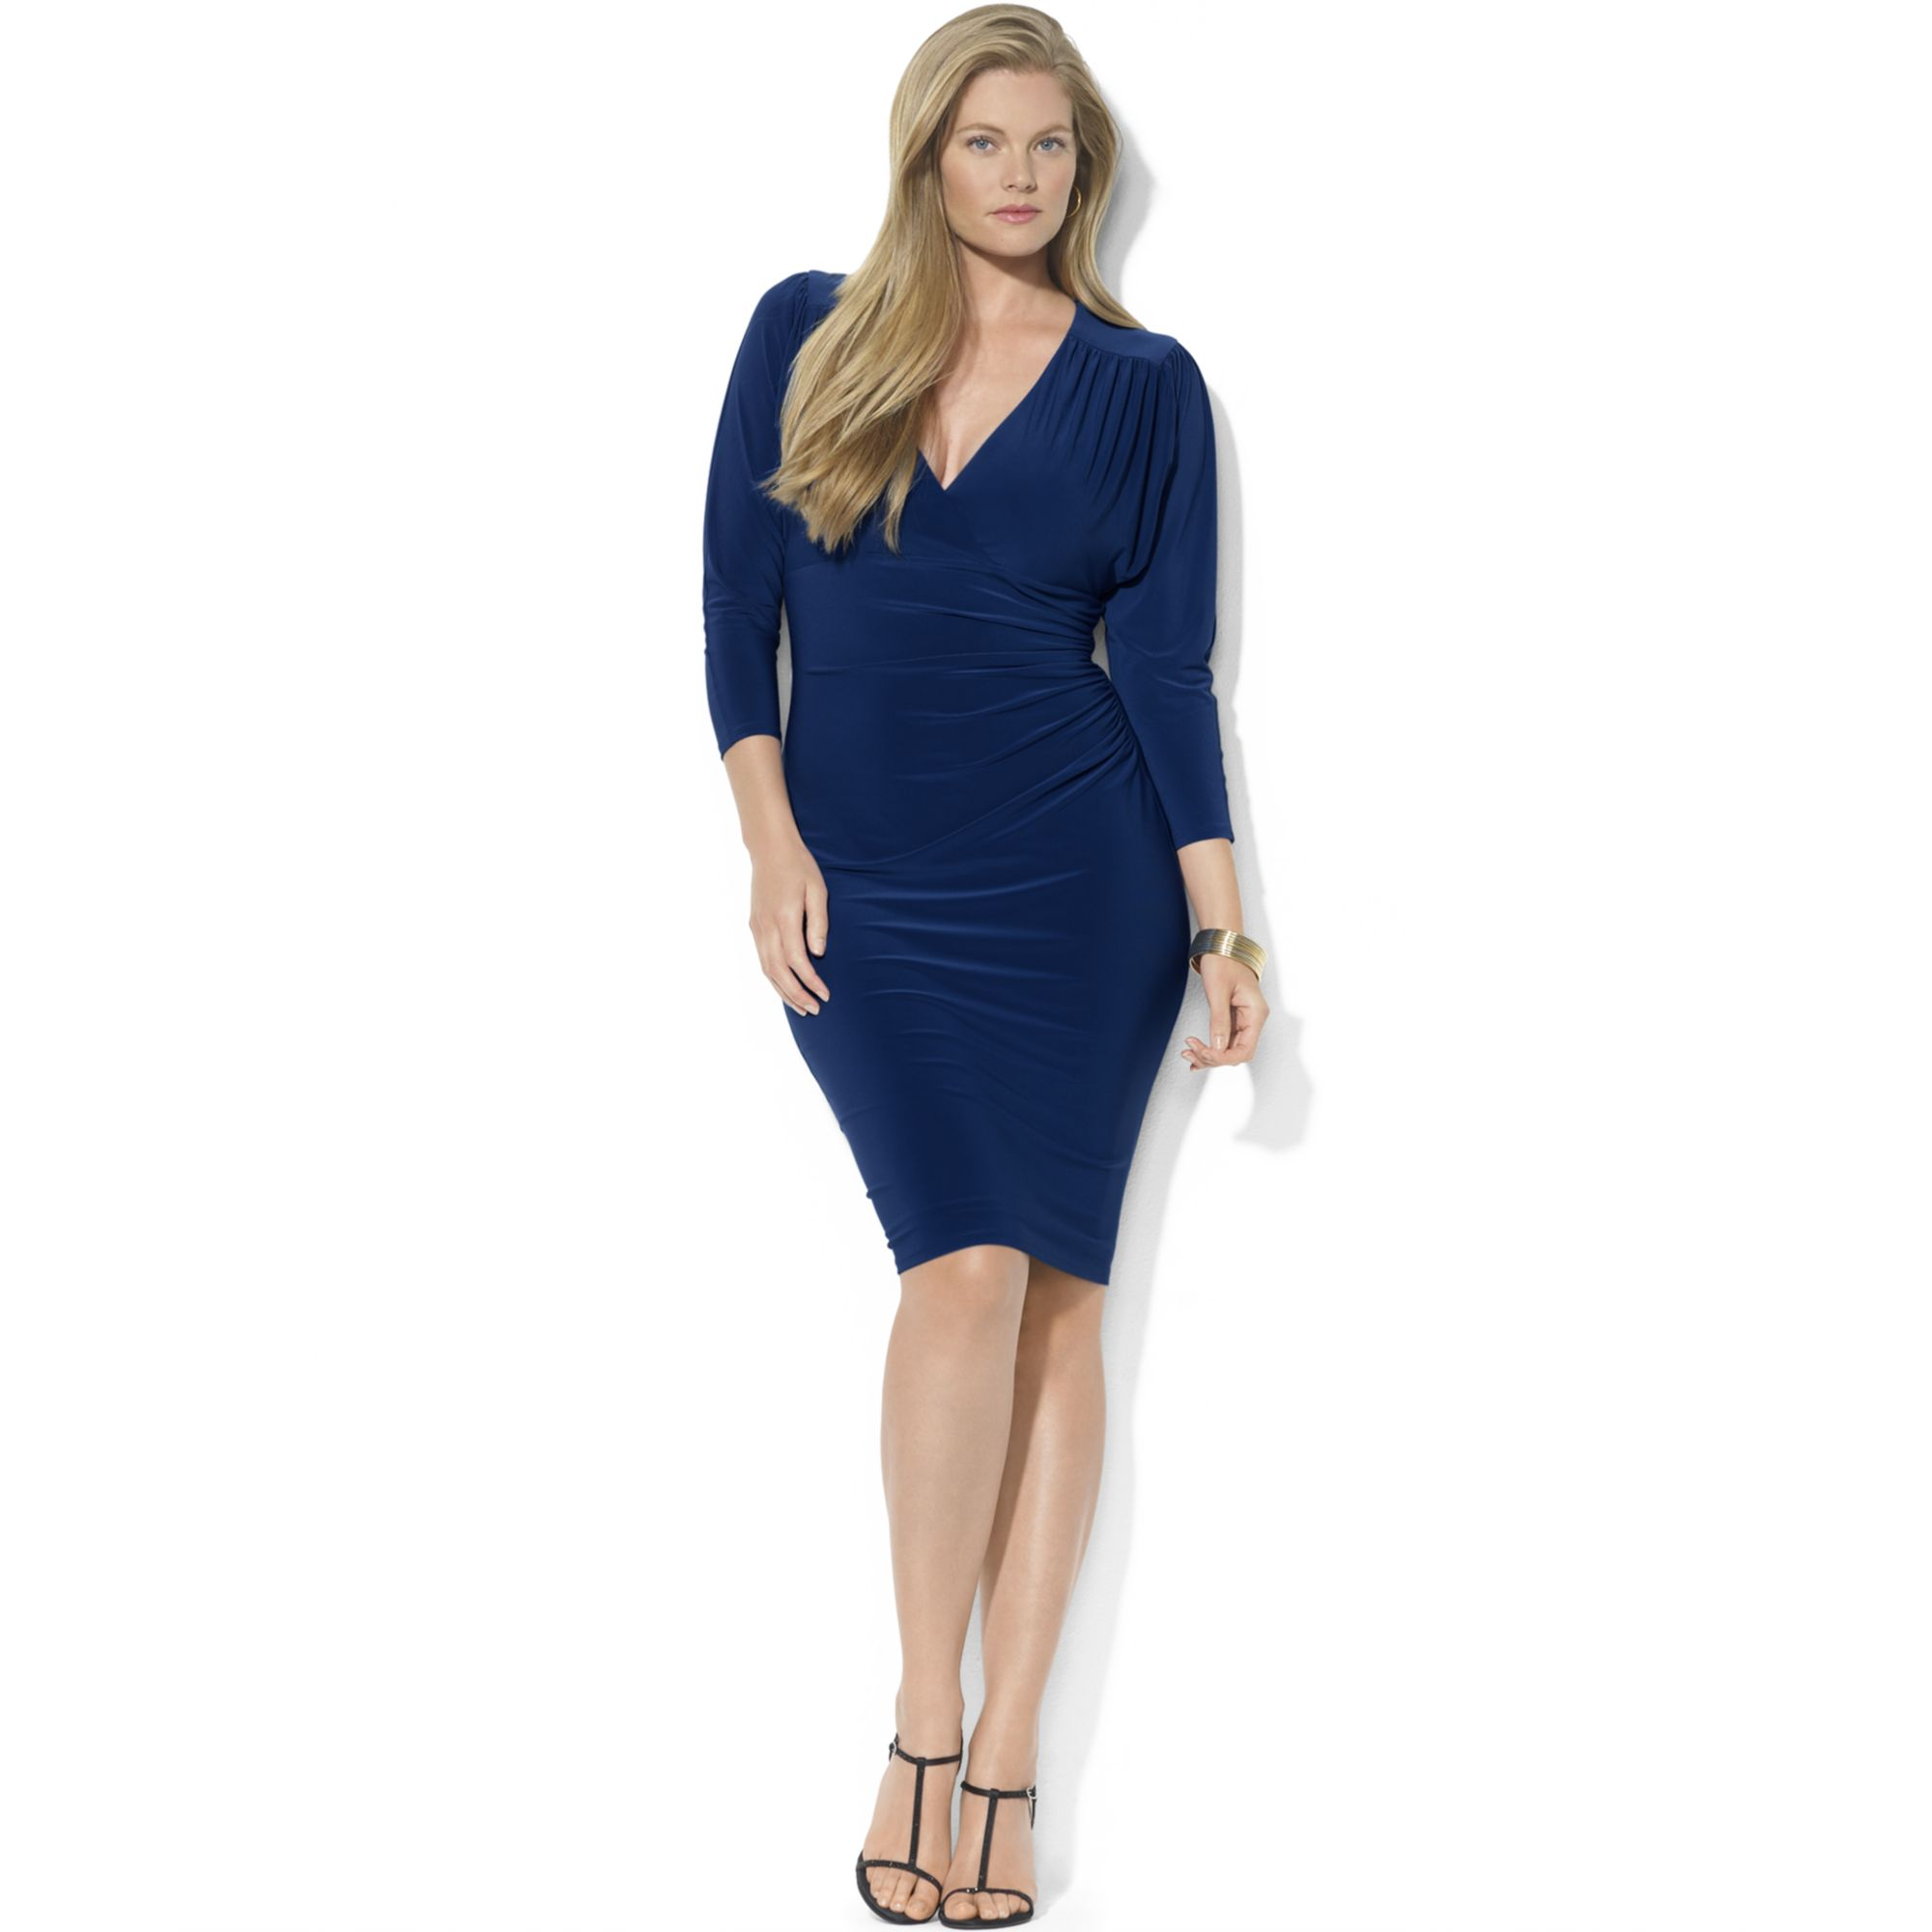 Plus Size Team Jersey Dresses